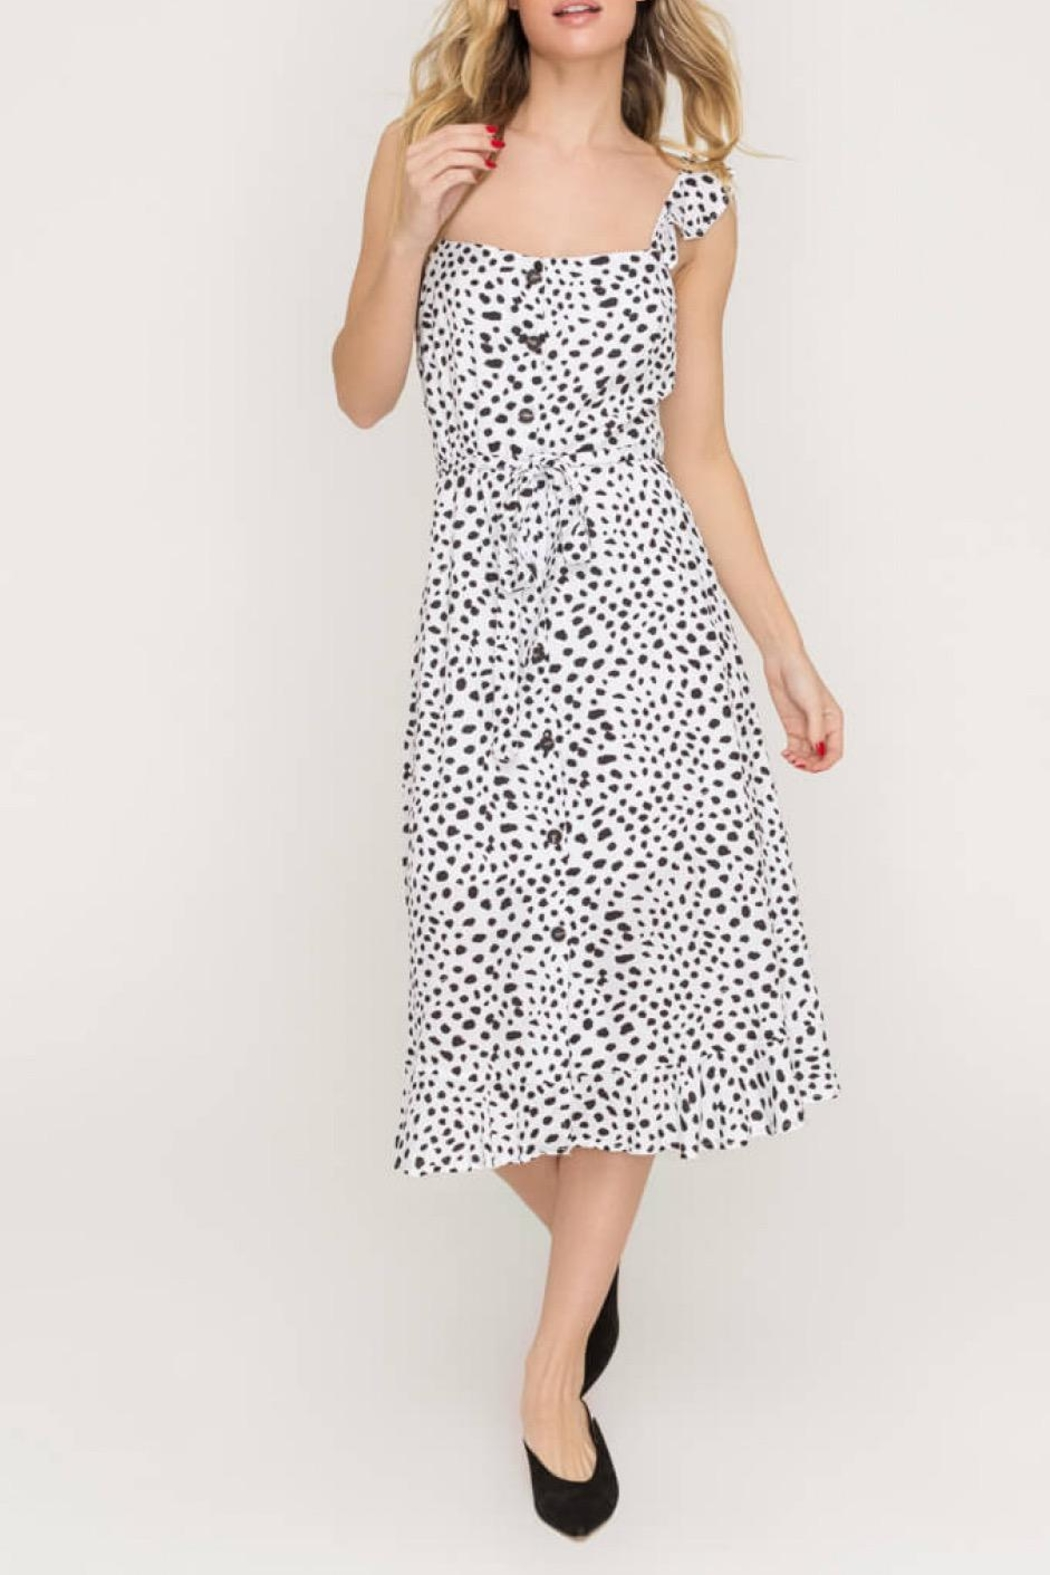 Lush Clothing  Speckled Midi Dress - Main Image